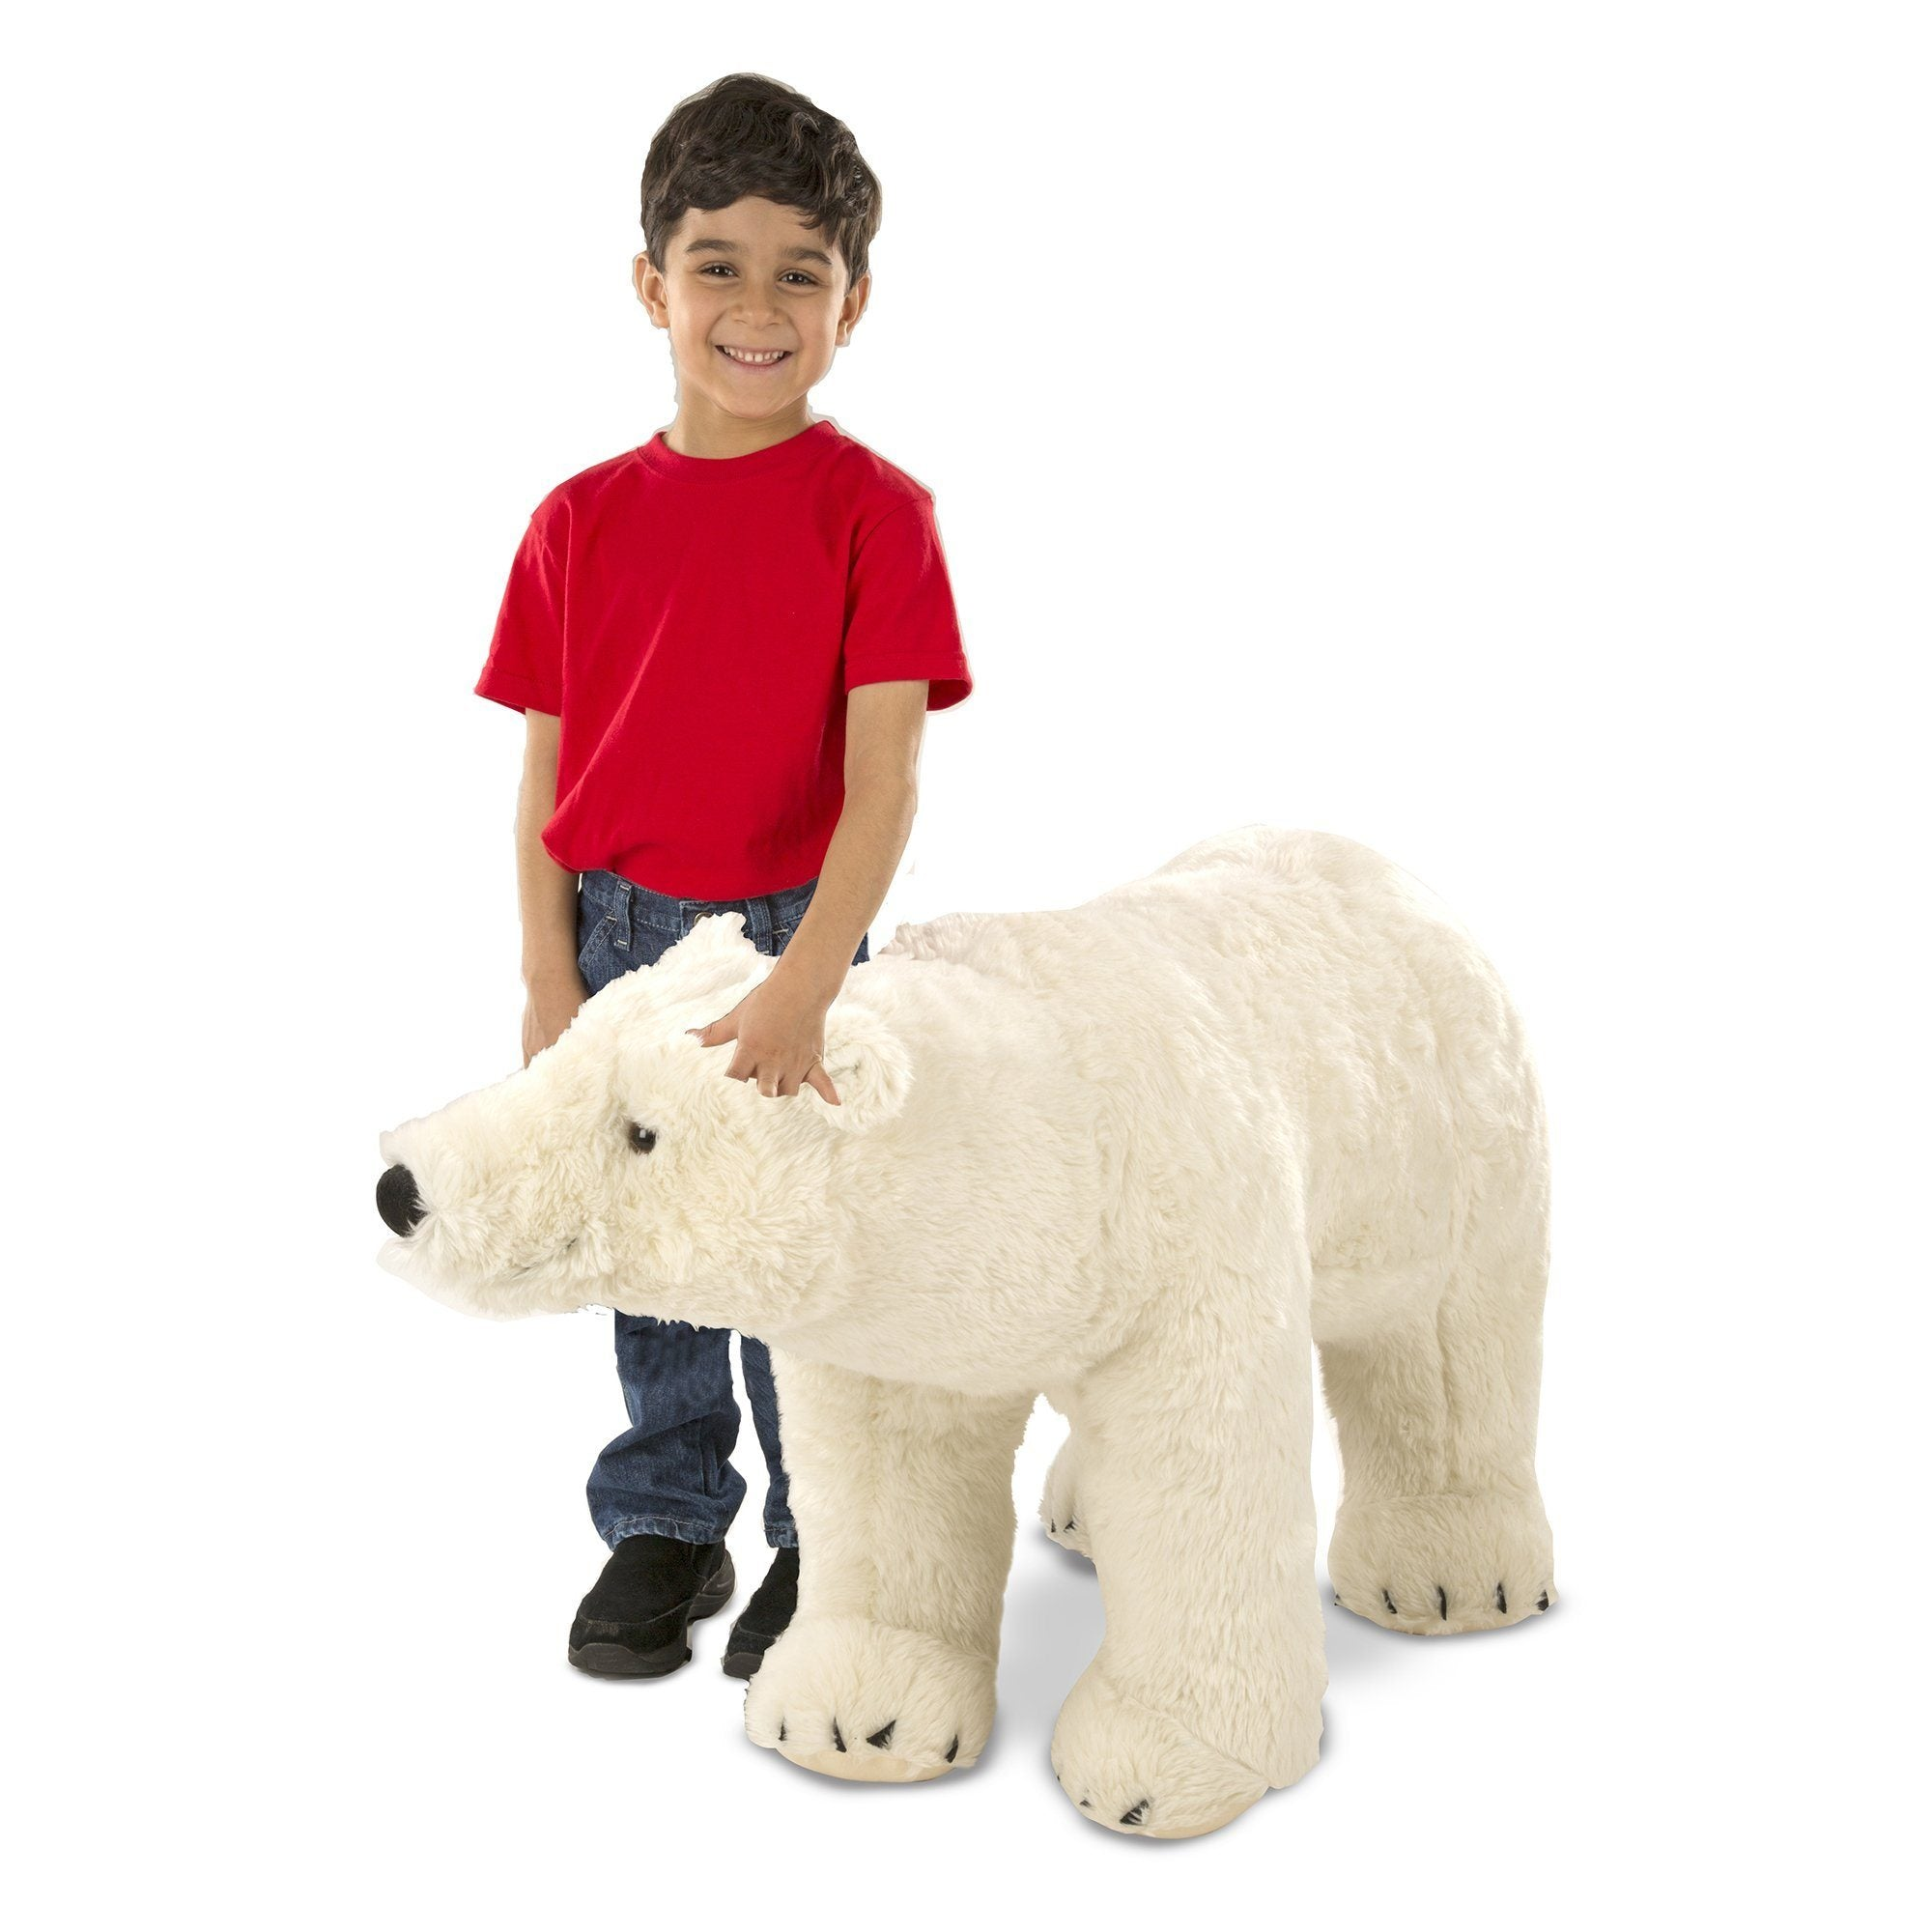 Melissa & Doug 18803 Giant Stuffed Animal Polar Bear - TOYBOX Cyprus